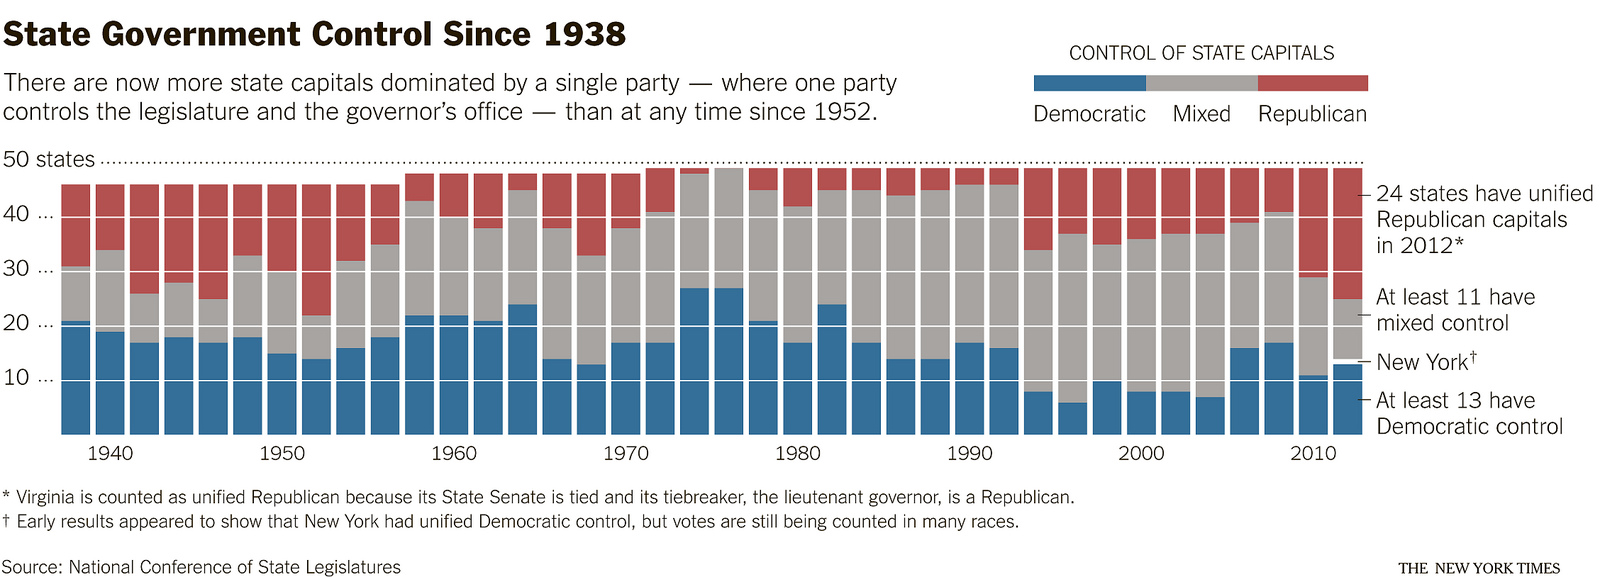 http://freakonometrics.hypotheses.org/files/2013/01/nyt-chartsnthings-3.jpg